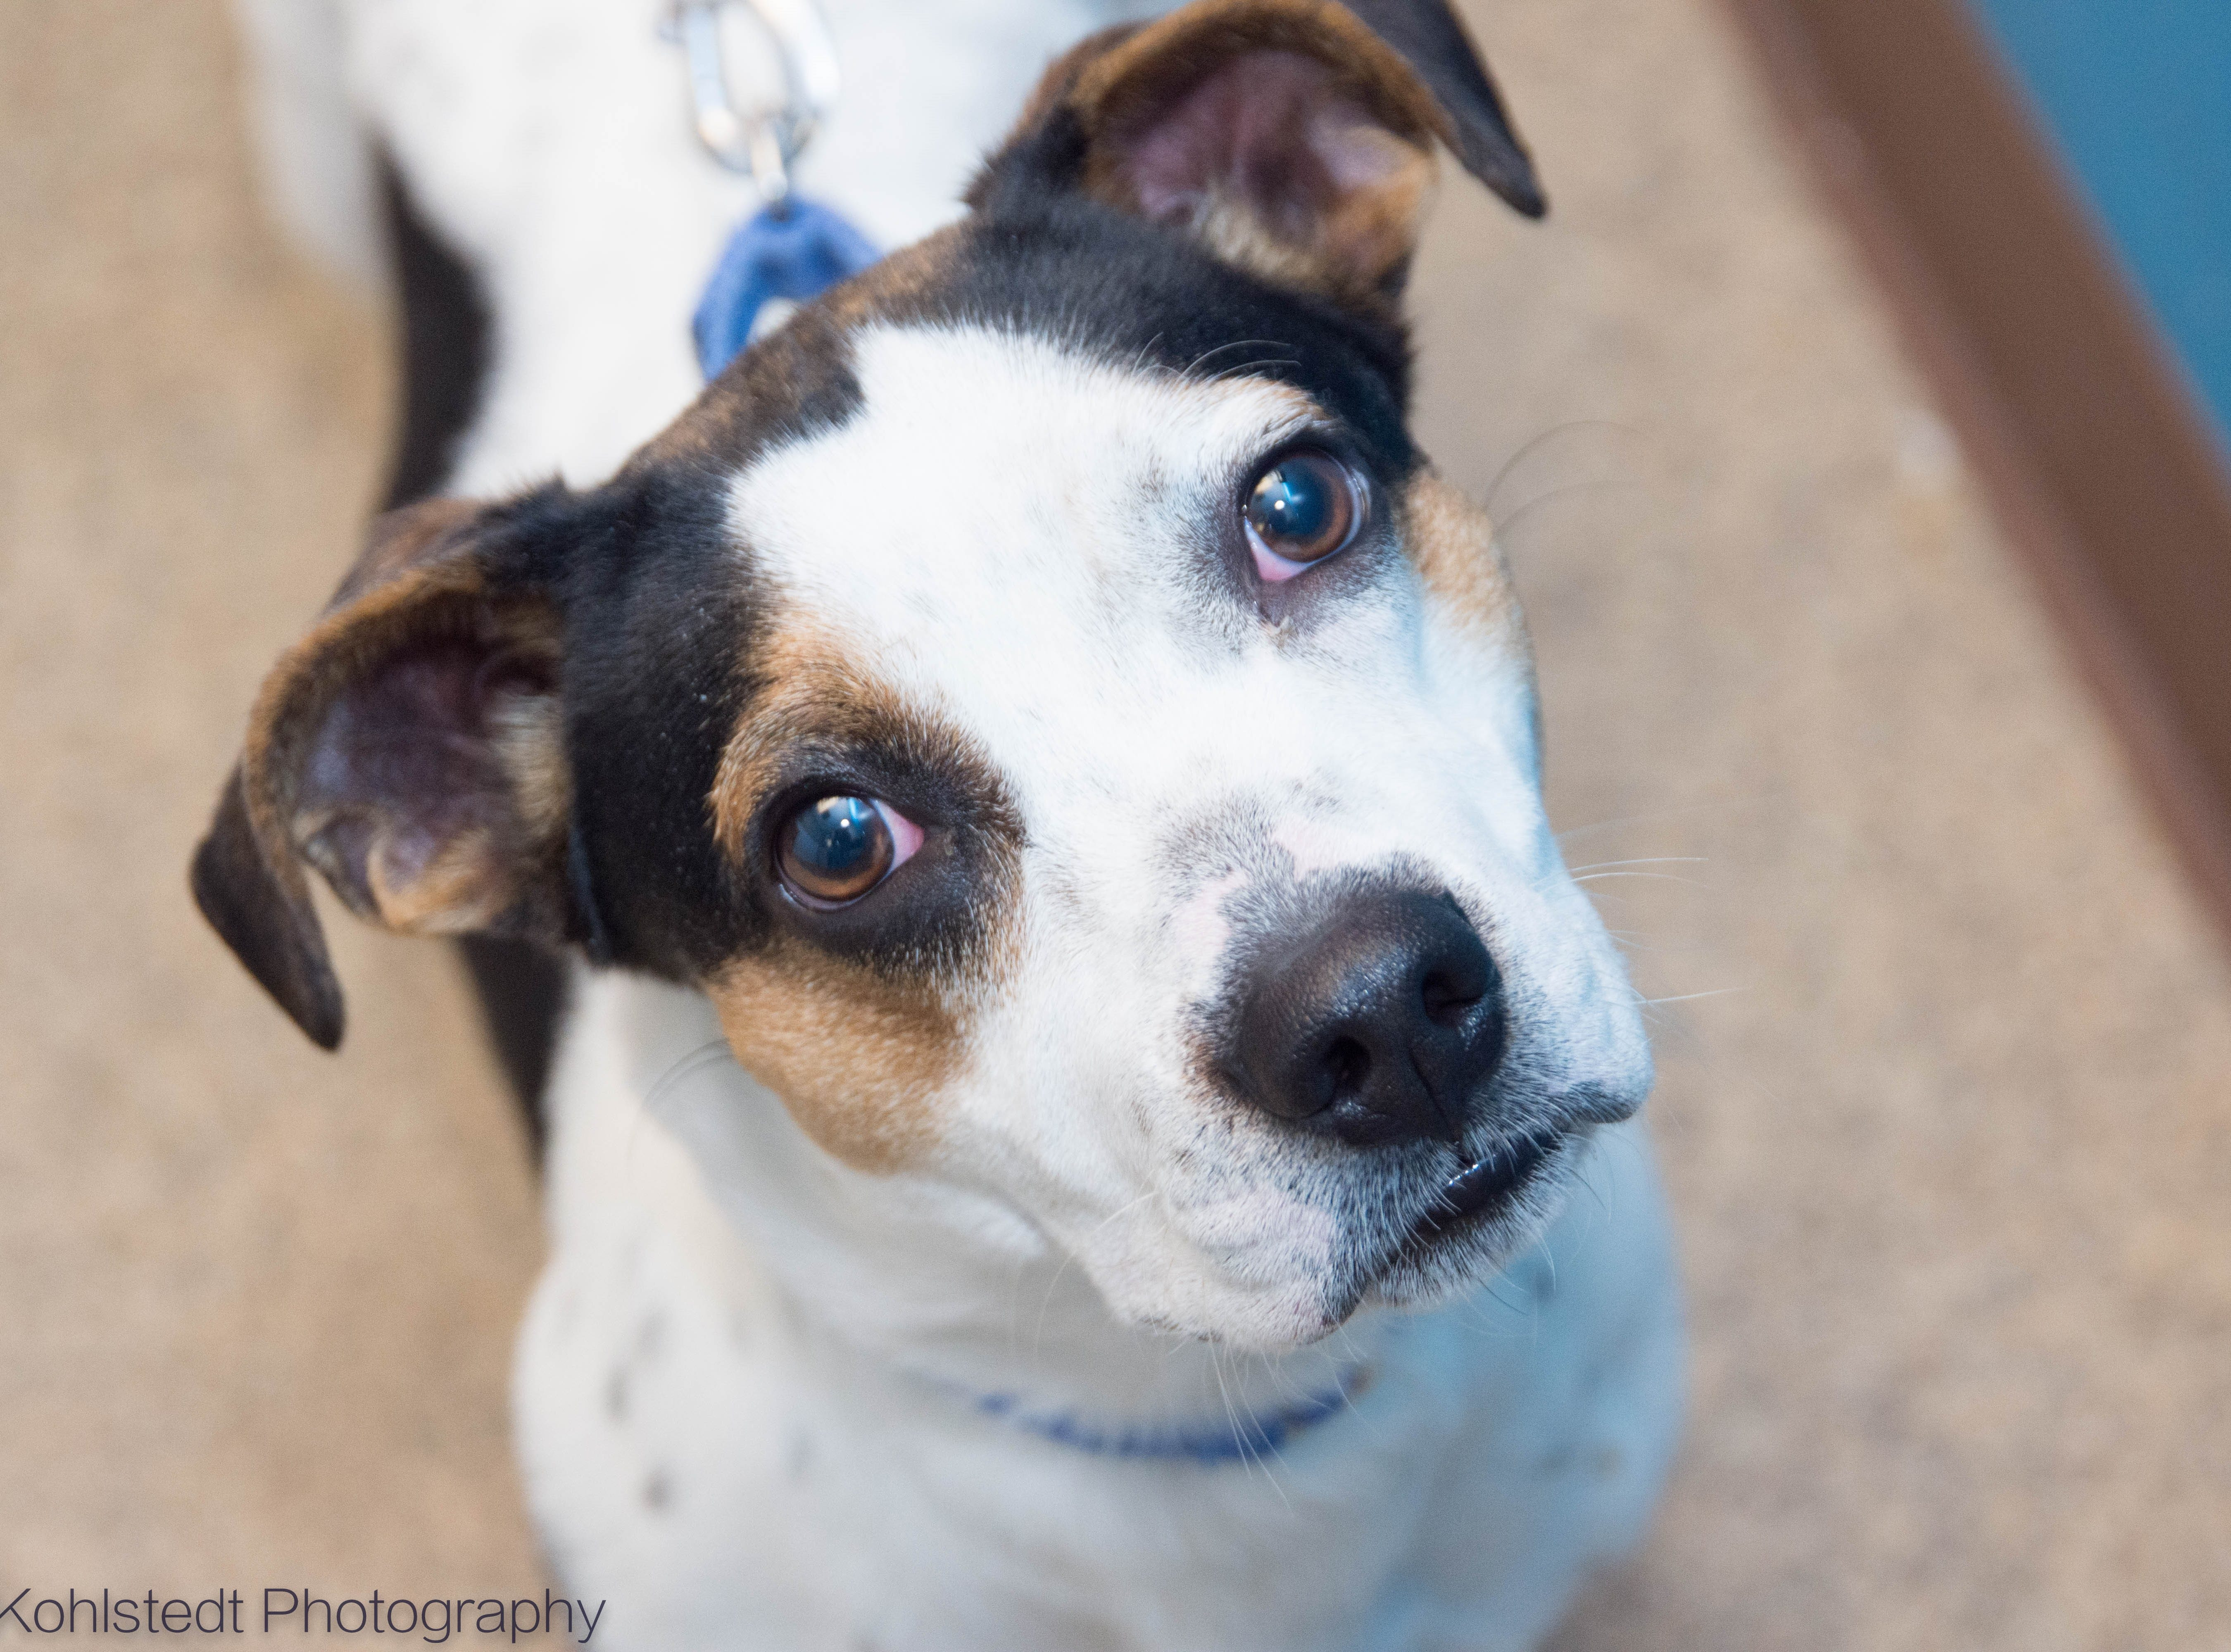 Quill is a spunky little gal. She's a pint-sized dog with a huge personality. Quill is about 2 years old. She loves to play and would do best in a home with older children. Meet Quill and all our adoptable animals at HumaneSocietyTennessee.org.